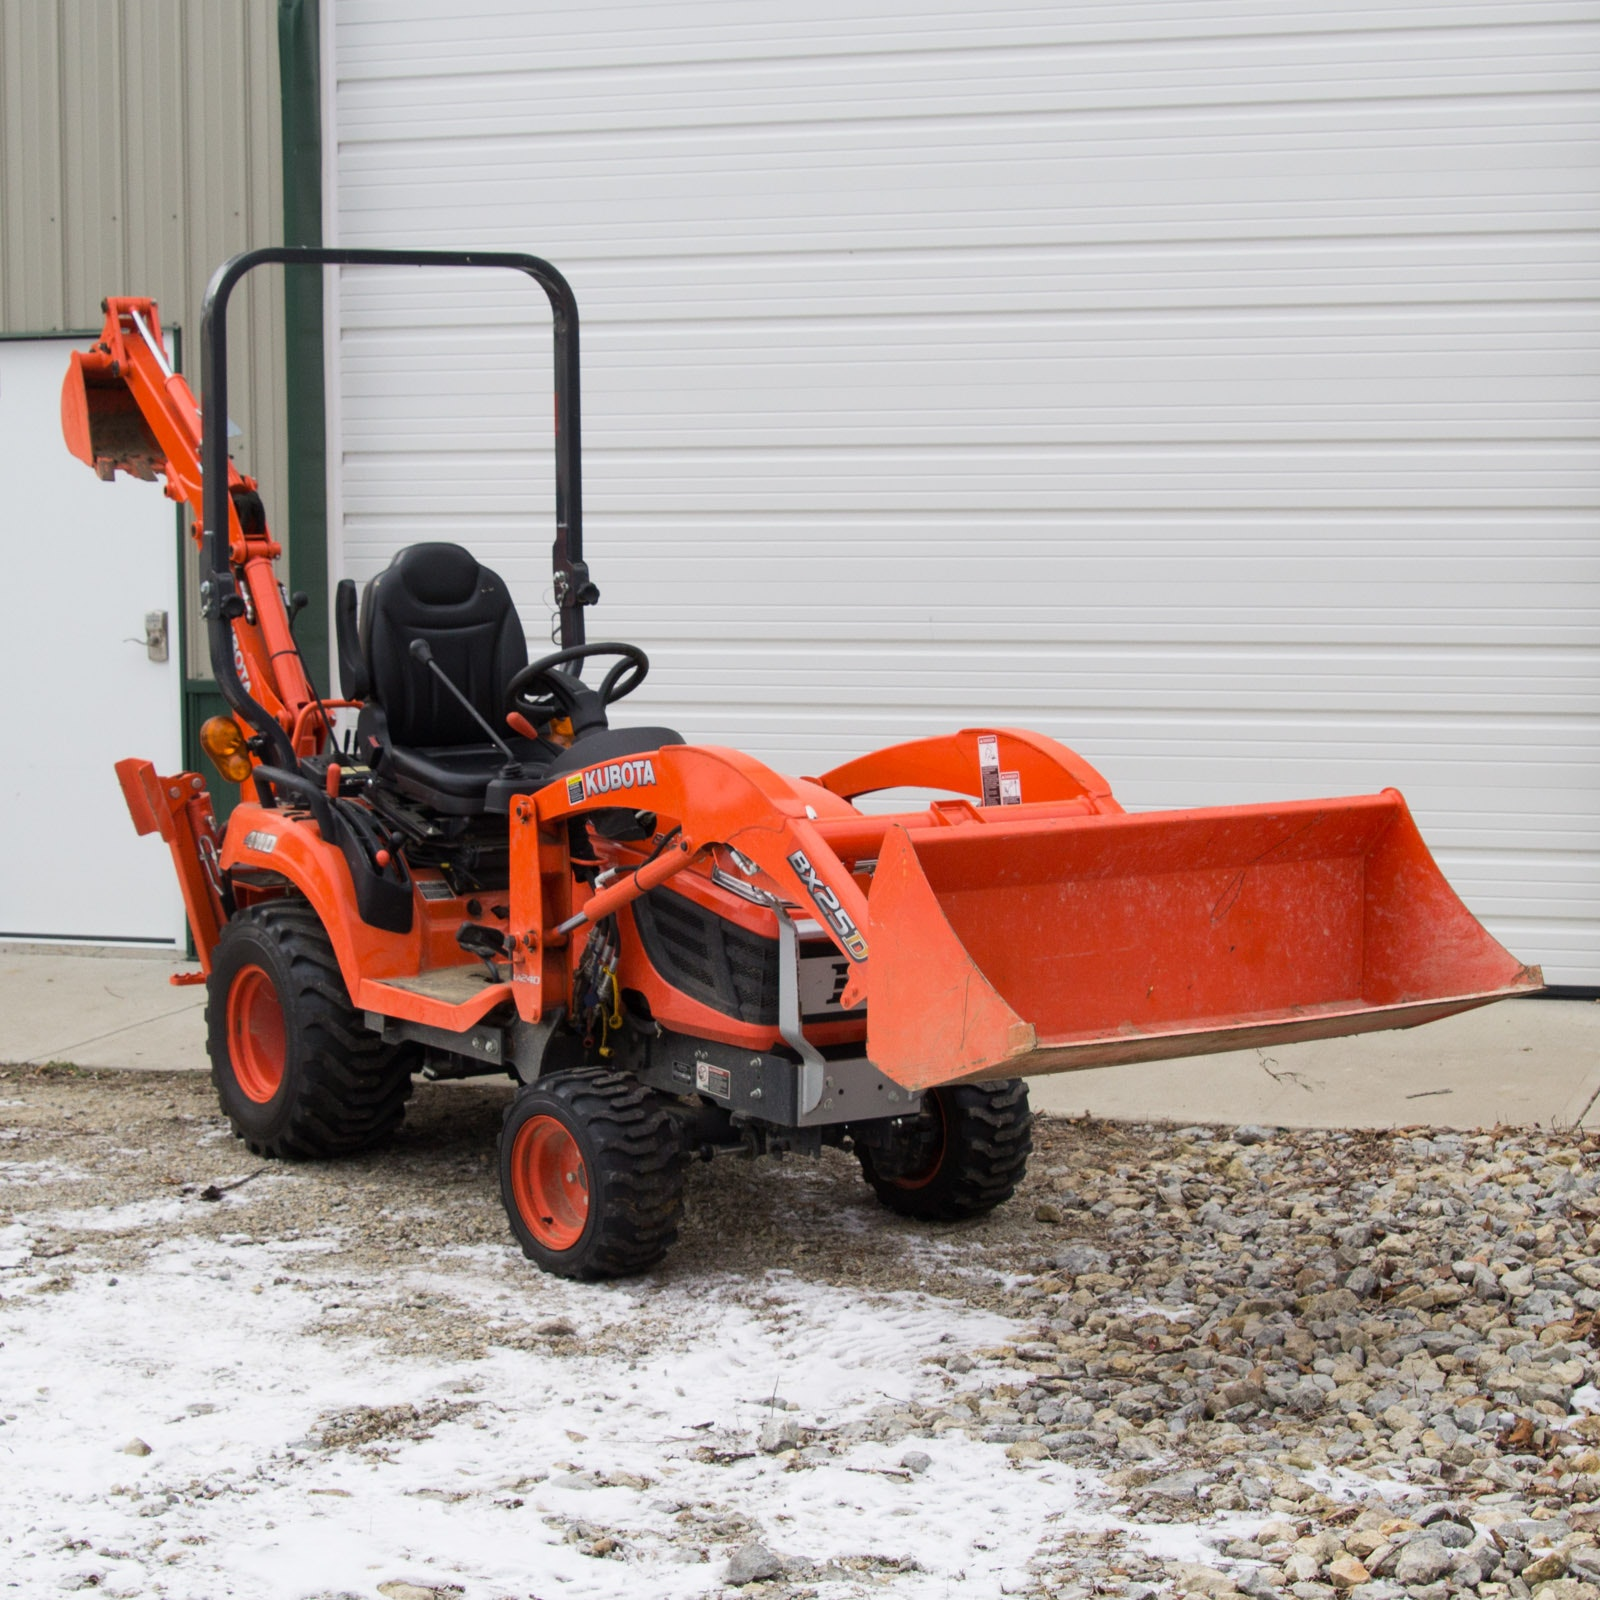 Kubota BX25DLB Tractor with Loader and Backhoe Attachments